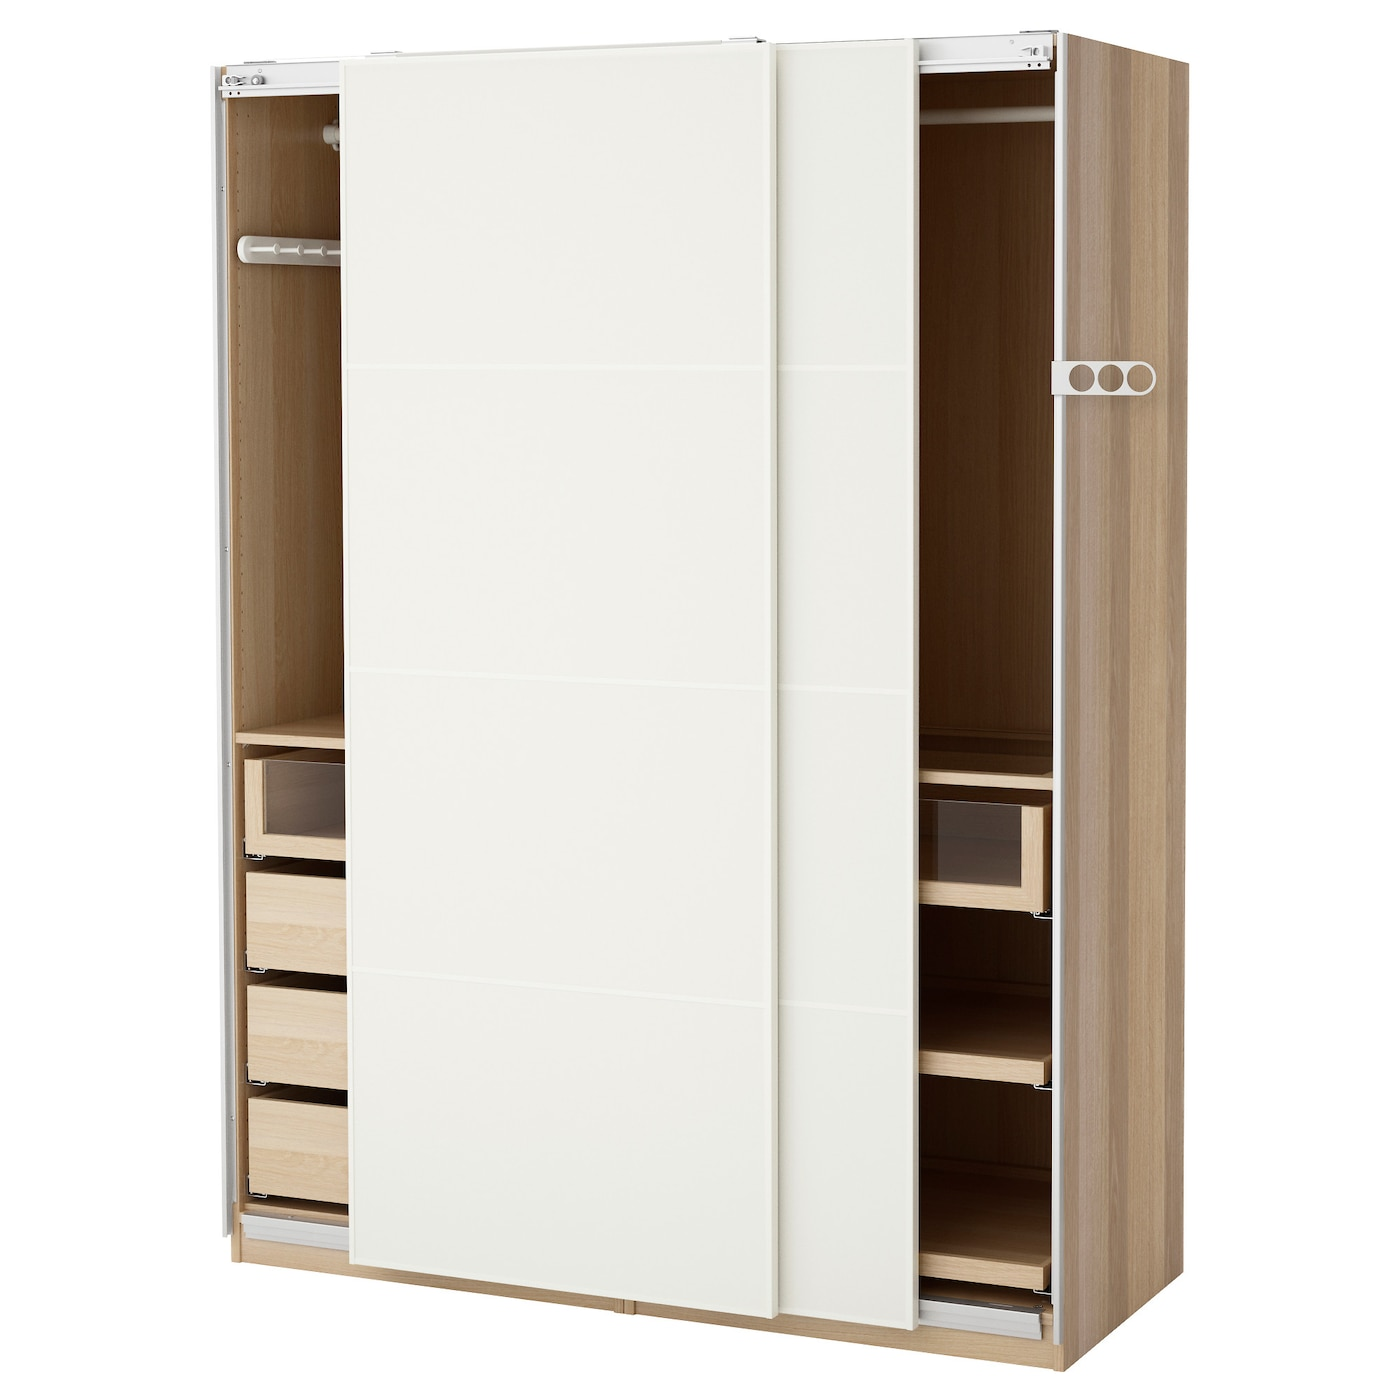 Pax wardrobe white stained oak effect mehamn white 150 x 66 x 201 cm ikea for Creation armoire ikea